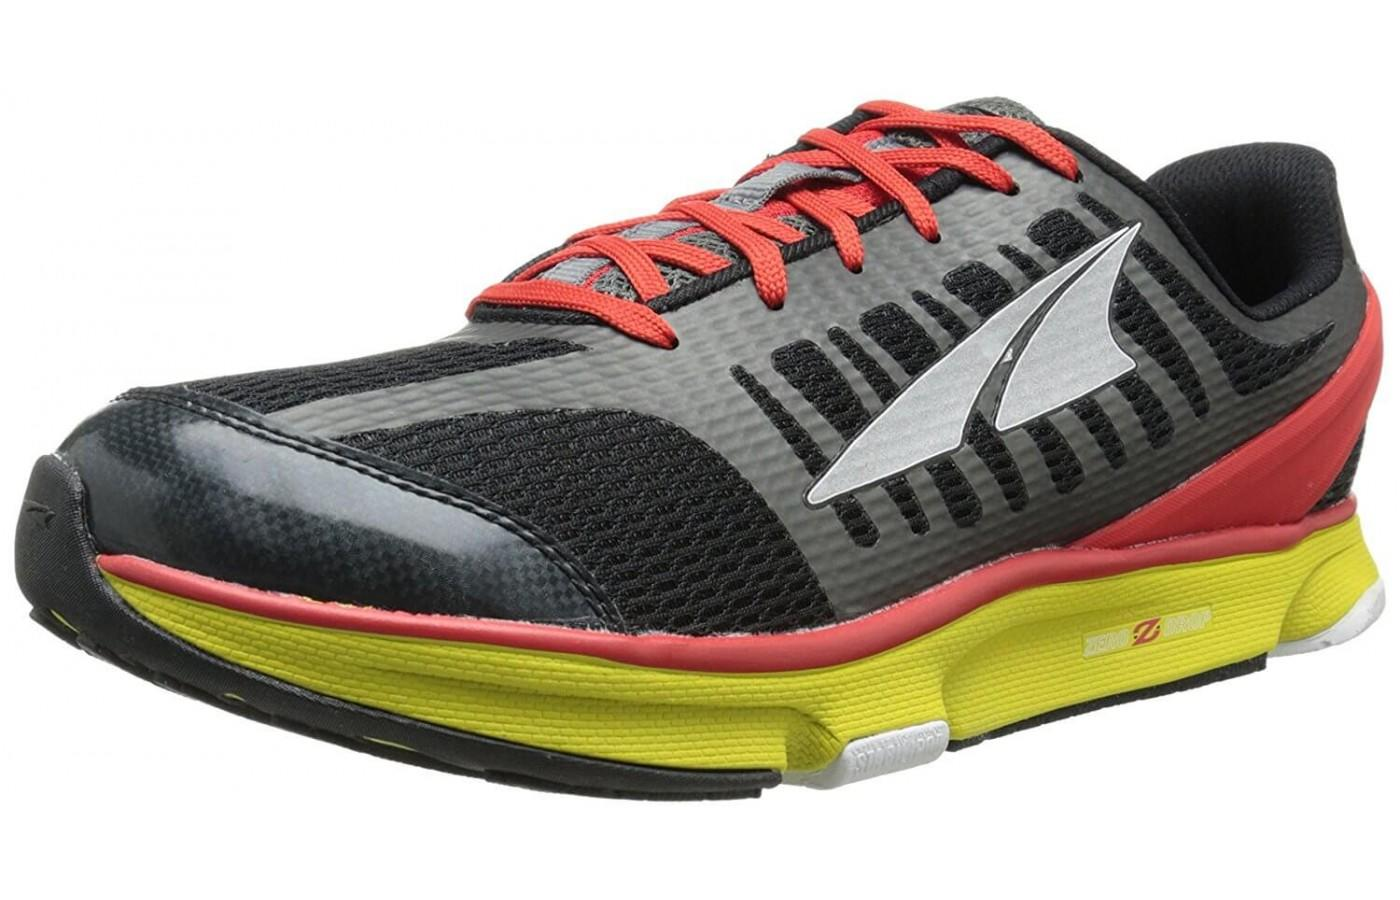 the Altra Provision 2 is a zero drop stability shoe with style